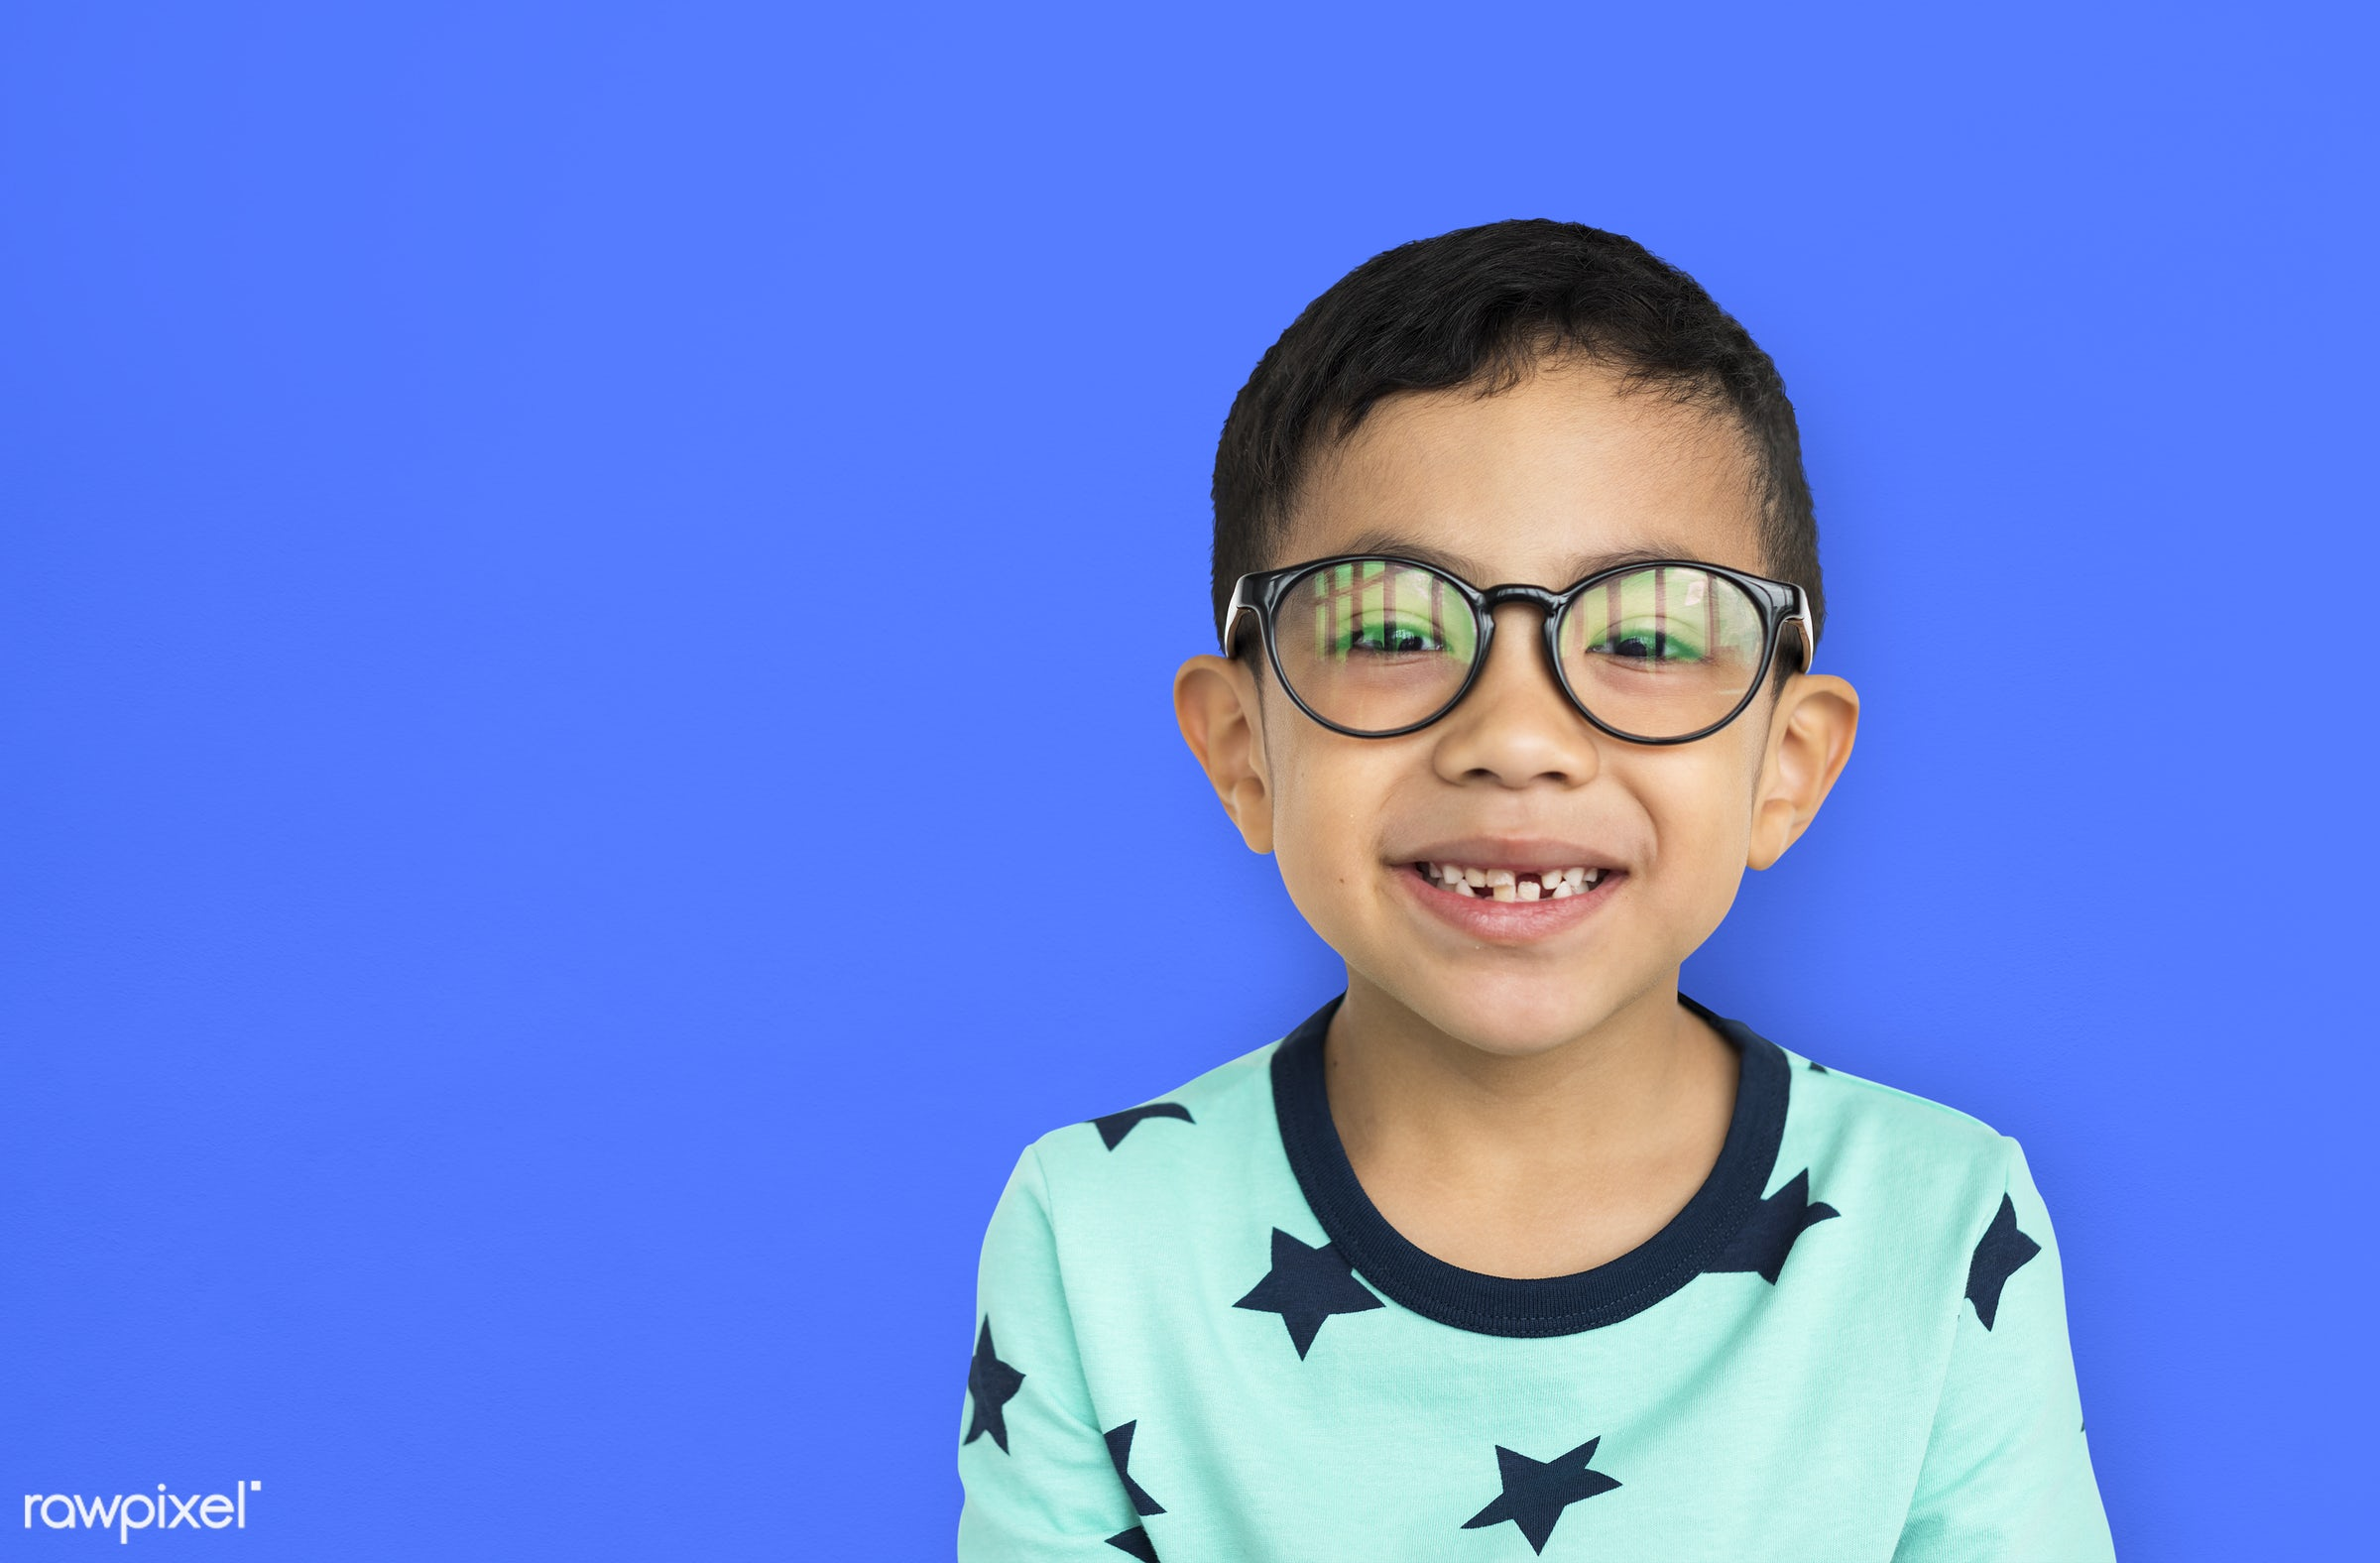 alone, boy, cheerful, child, eyeglasses, isolated, kid, one, playful, smiling, wearing, young, youth, art, color, paints,...